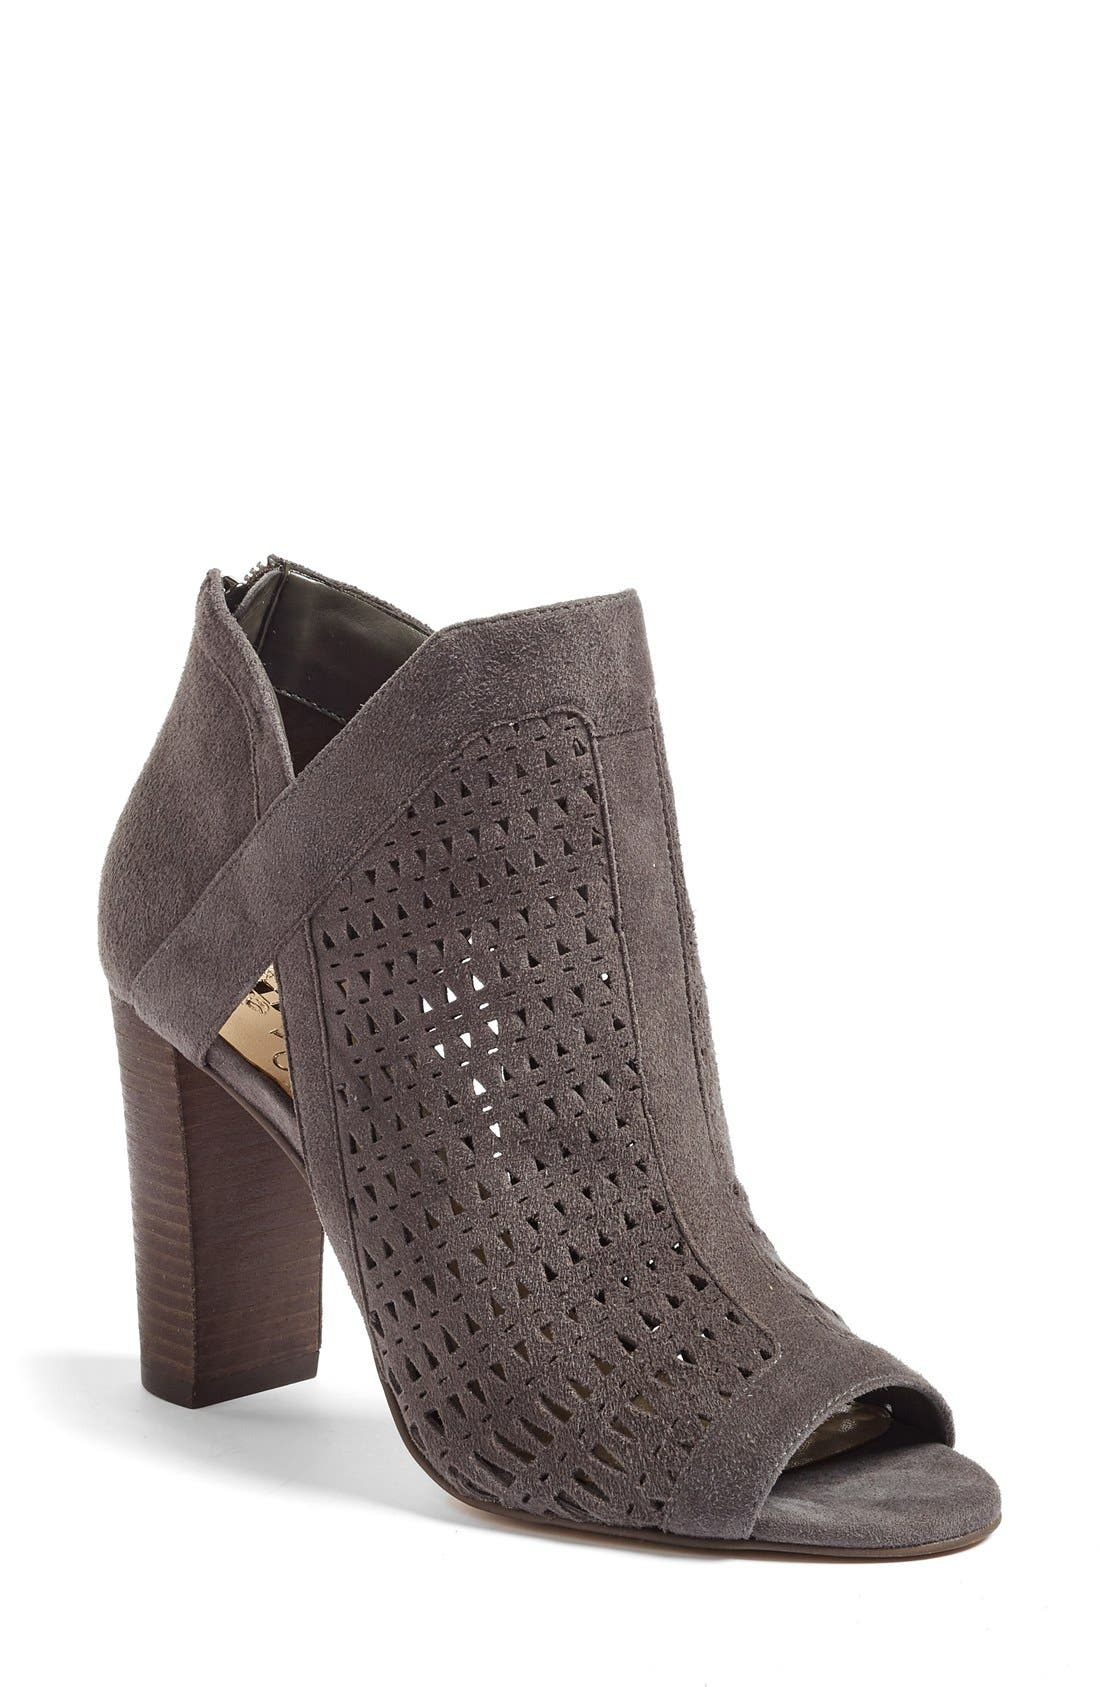 Alternate Image 1 Selected - Vince Camuto Cranita Perforated Bootie (Women)